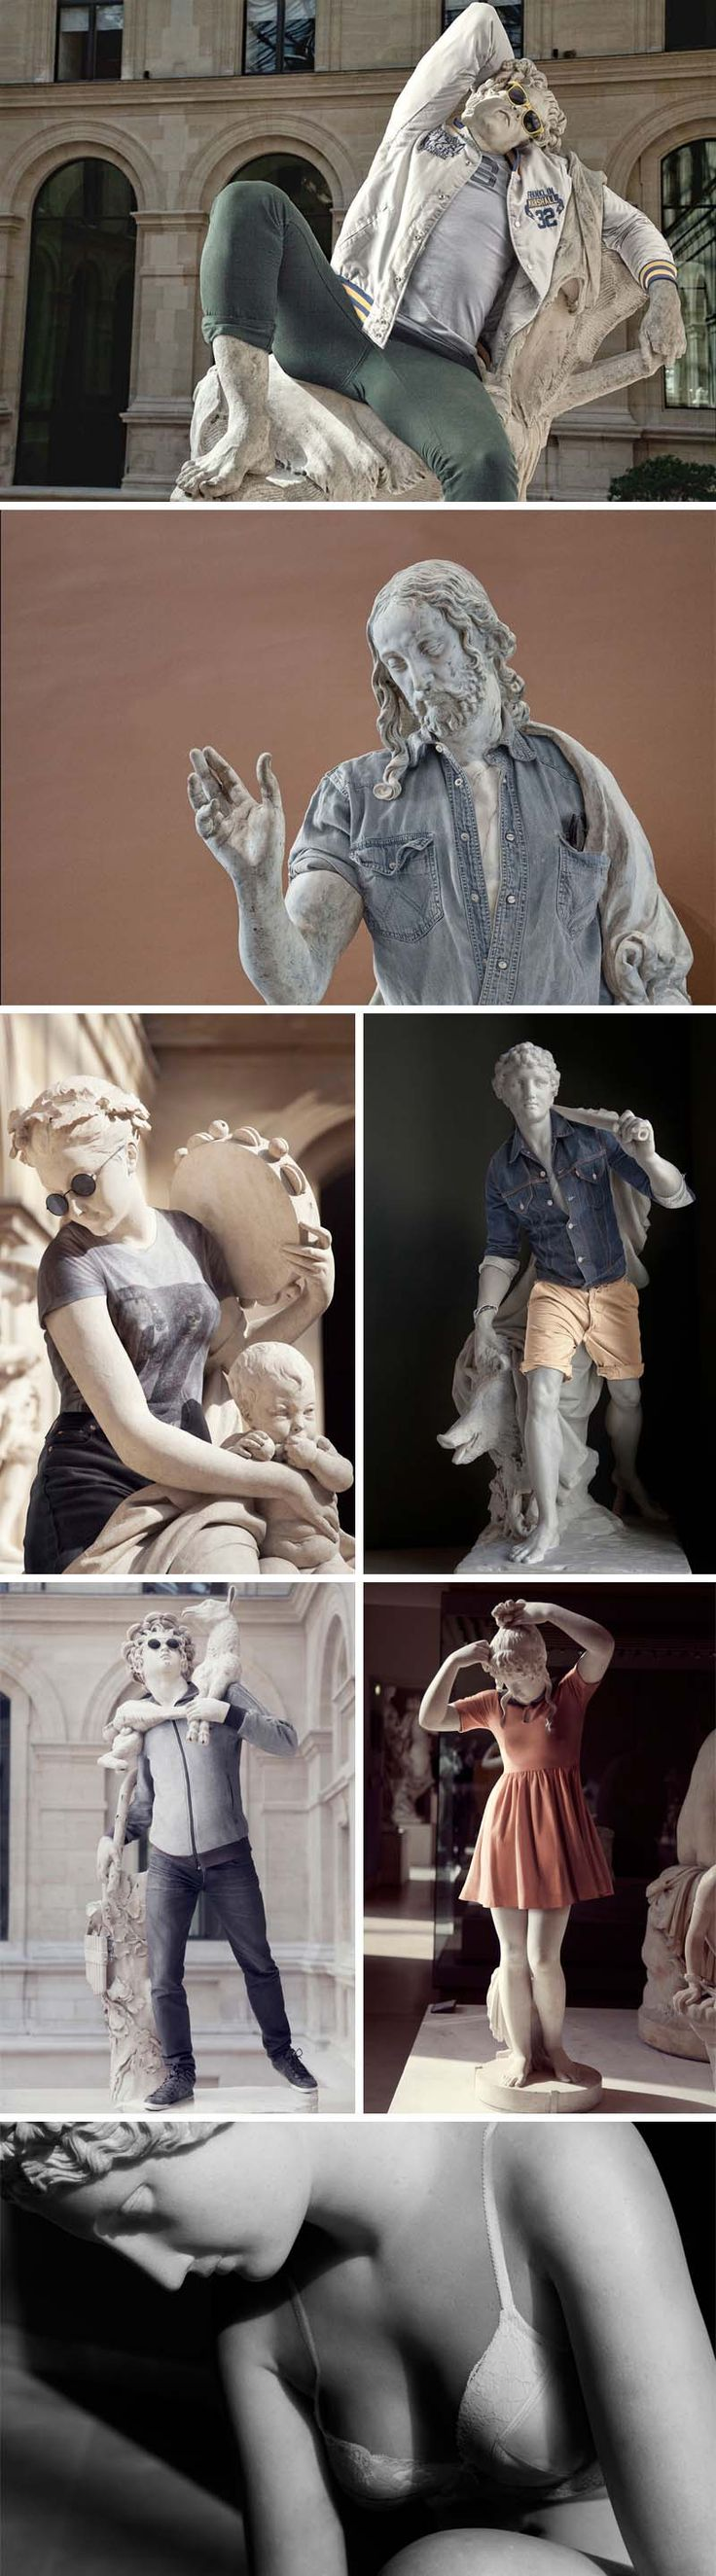 Street Stone Series by Leo Caillard (photographer) & Alexis Persani (Photoshop manipulation). Classical statues from the Louvre dressed up; stone hipsters.They really did a pretty good job.